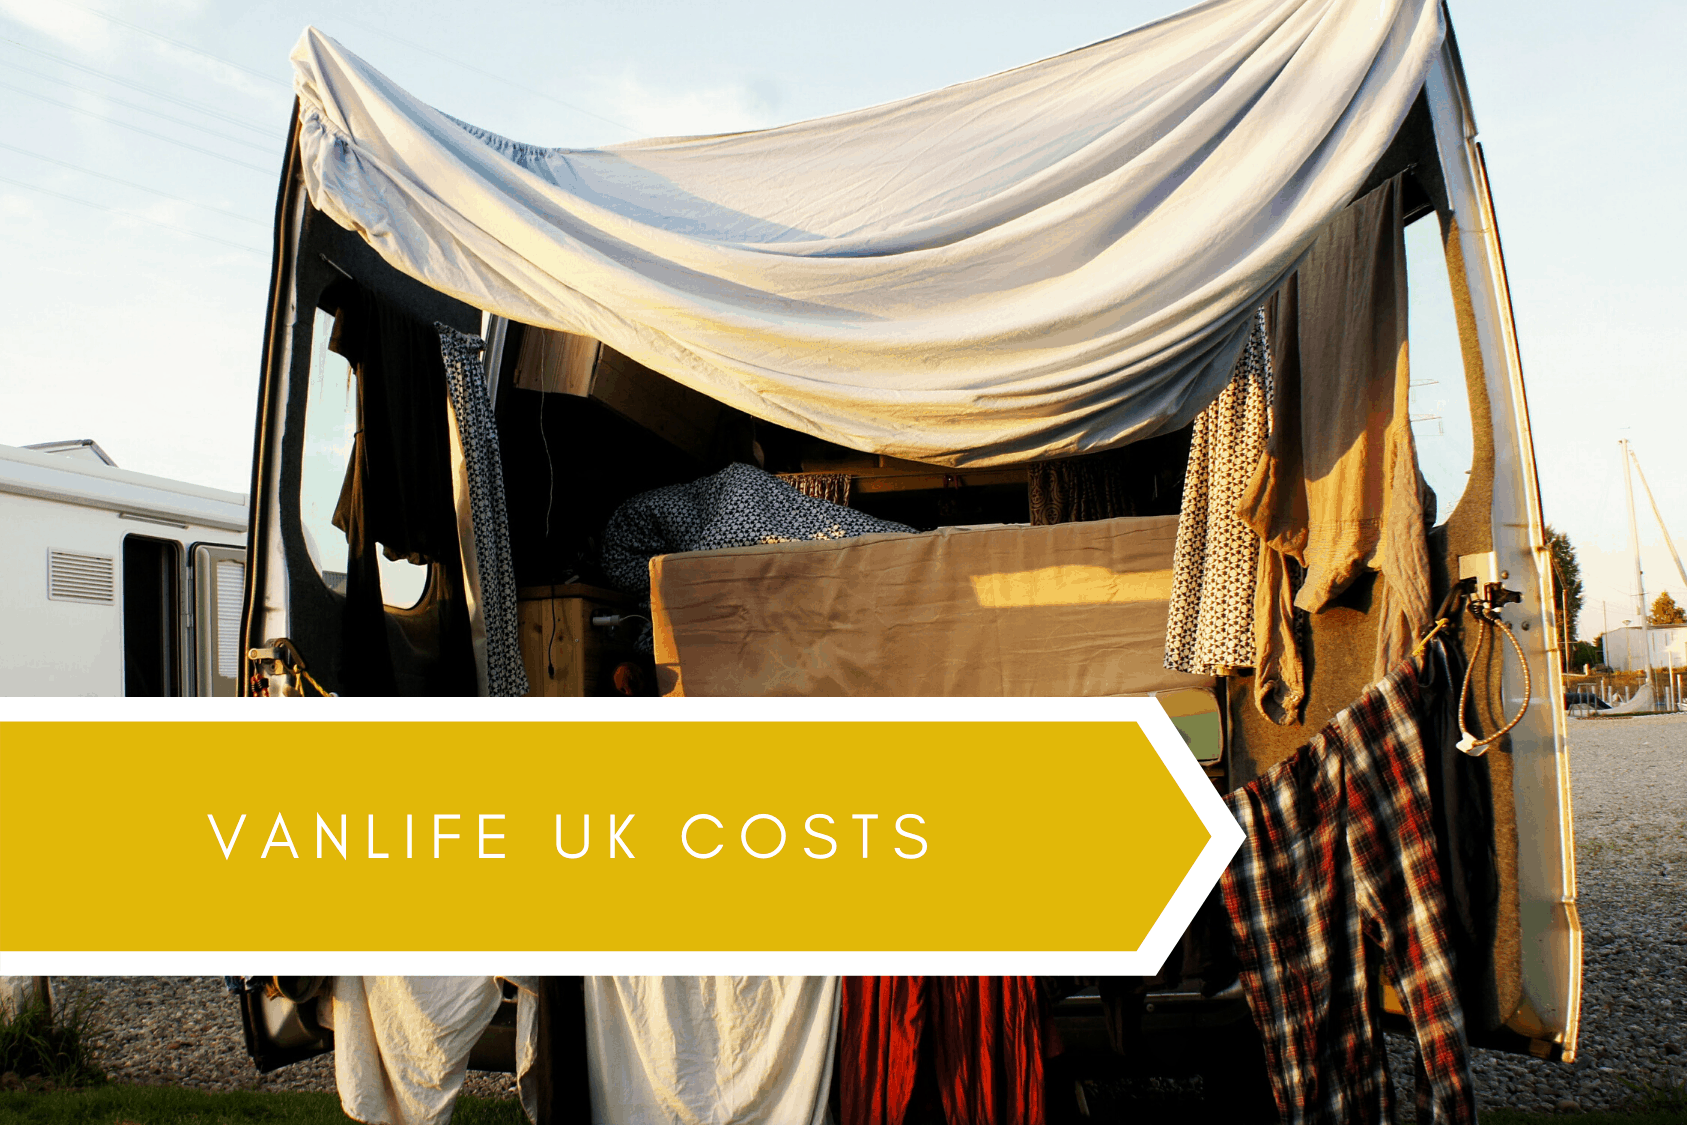 van life uk costs